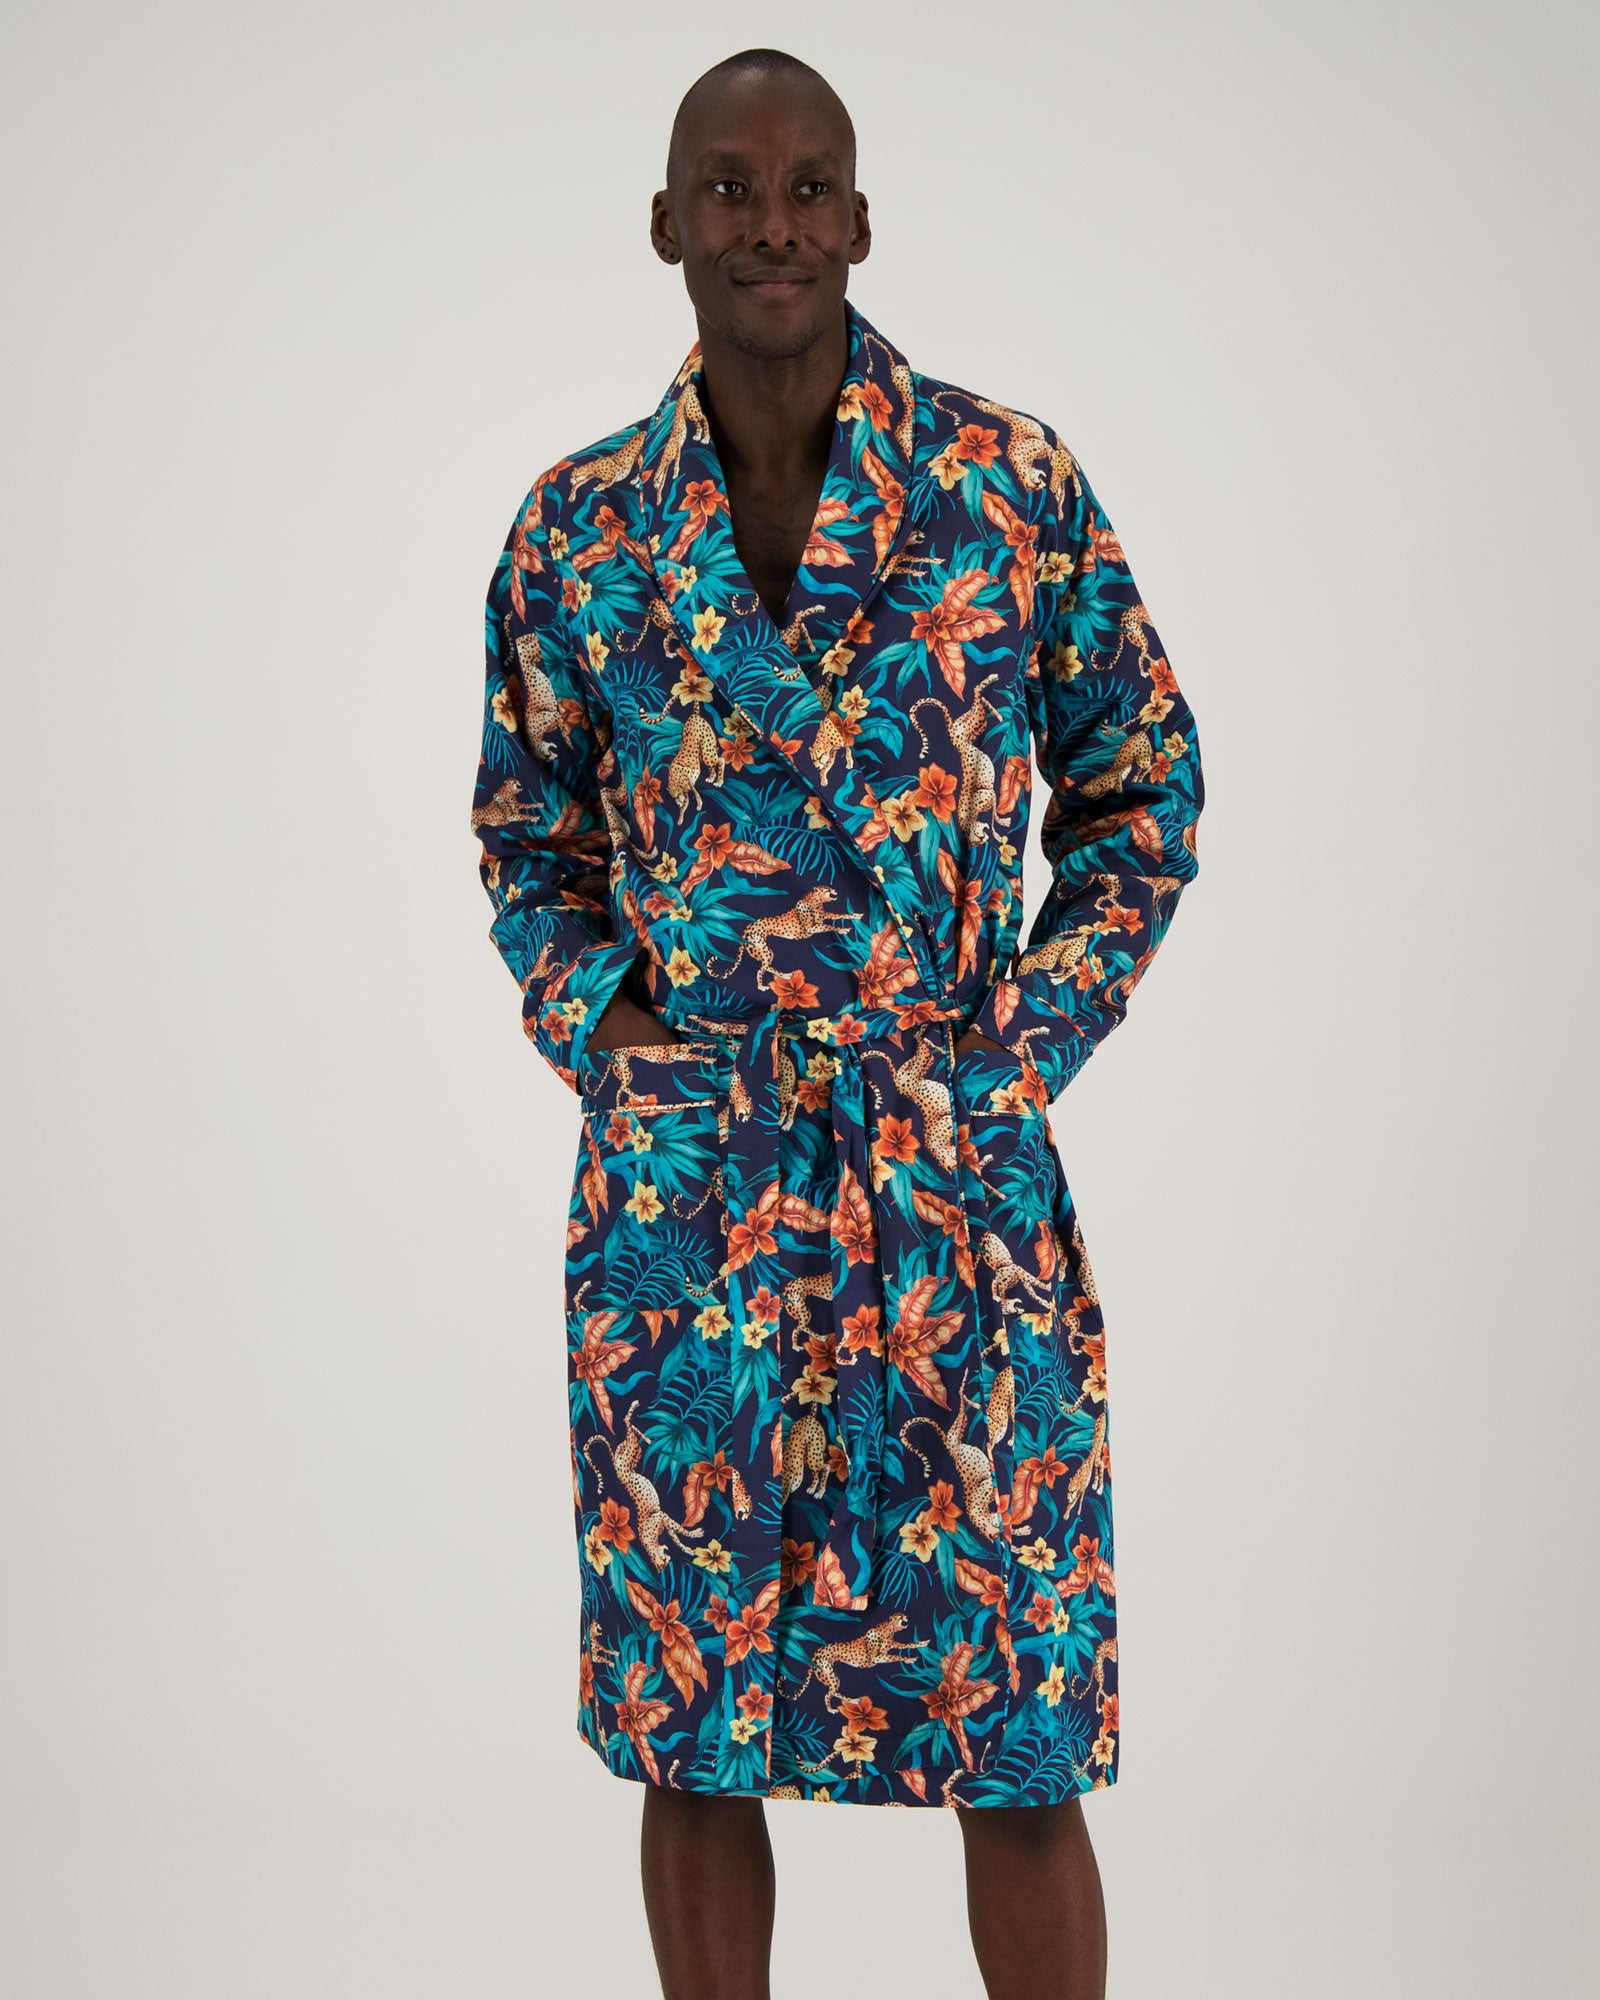 Mens Gown - Jungle Cheetahs Navy